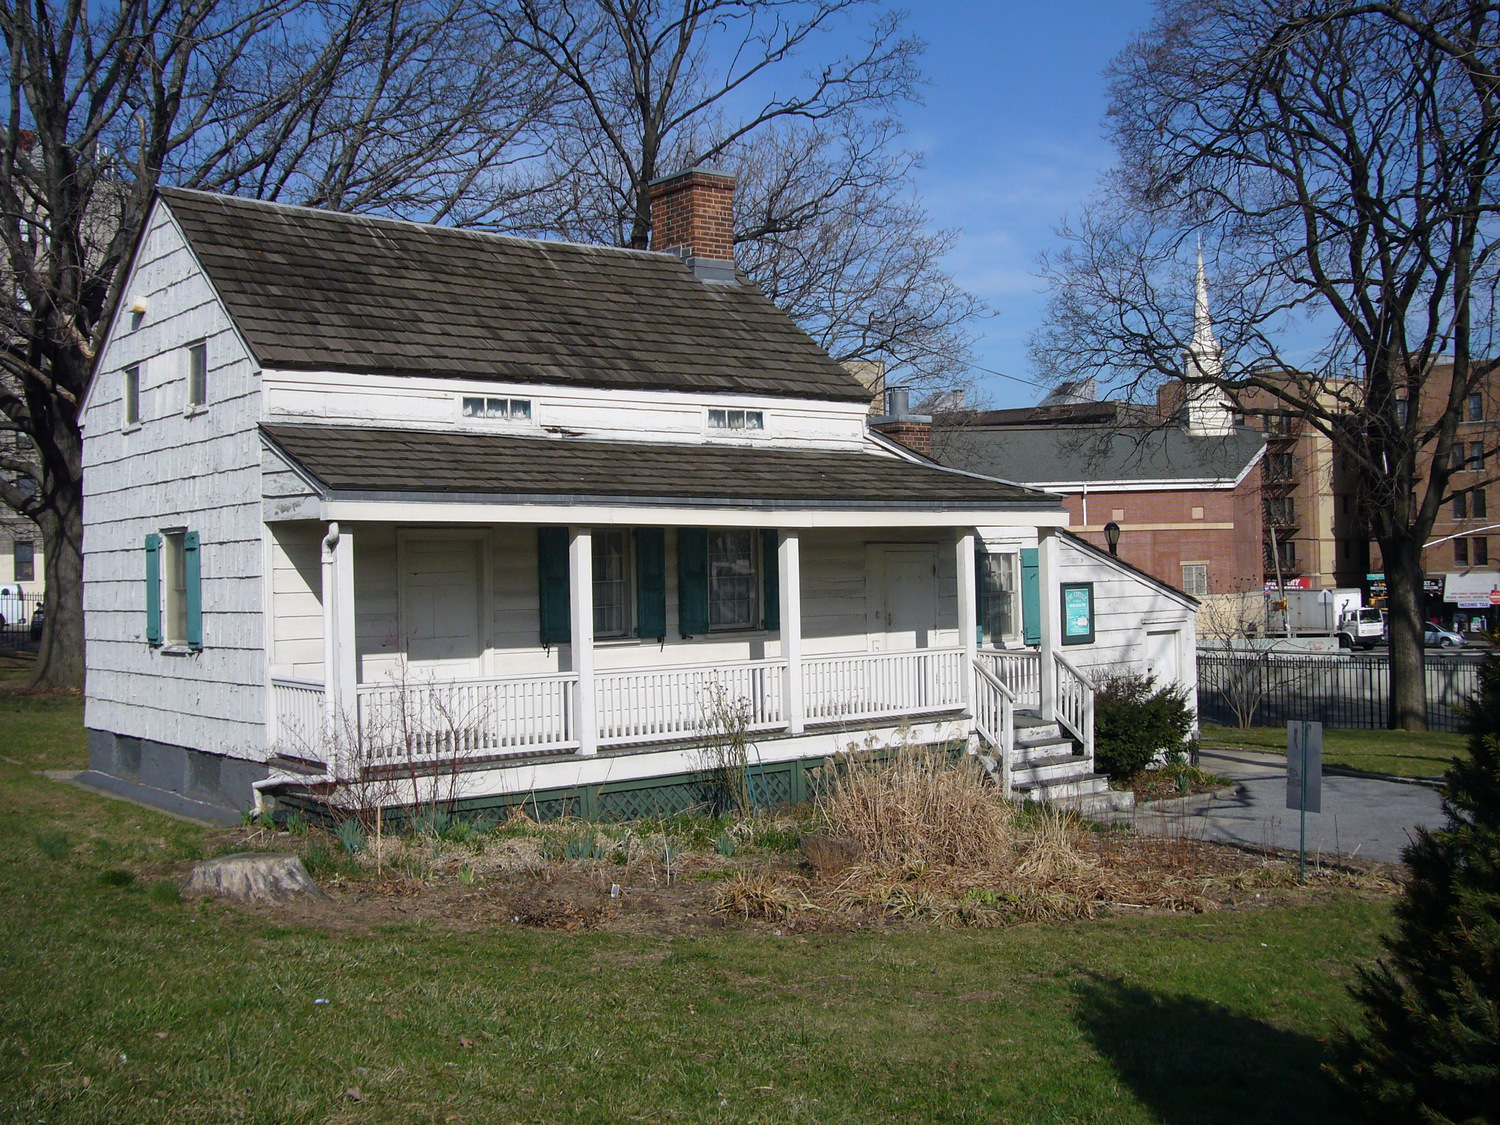 "Edgar Allen Poe cottage | The final home of Edgar Allen Poe. On the Grand Concourse in the Bronx. <a href=""http://www.nycgovparks.org/sub_about/parks_divisions/historic_houses/hh_edgar_allan_poe.html"" rel=""nofollow"">more</a>"